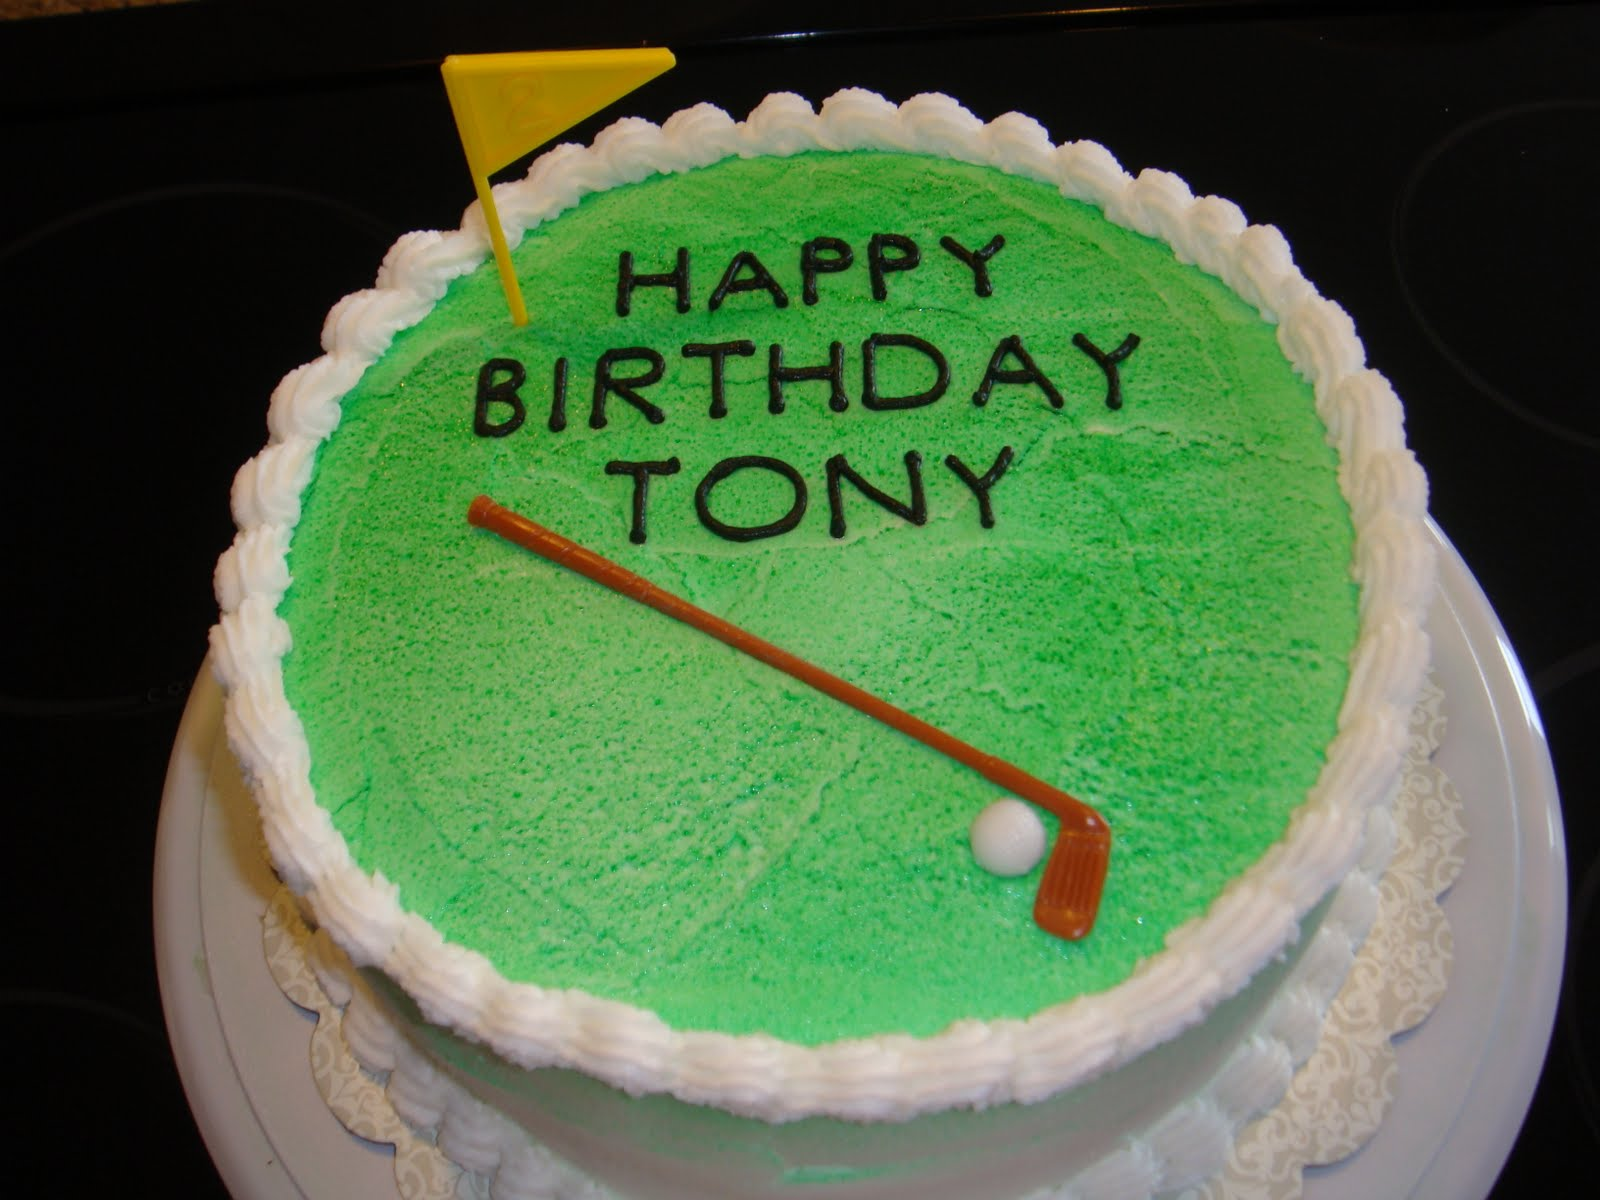 Vickis Sweet Treats Golf Themed Cake for Tonys Birthday